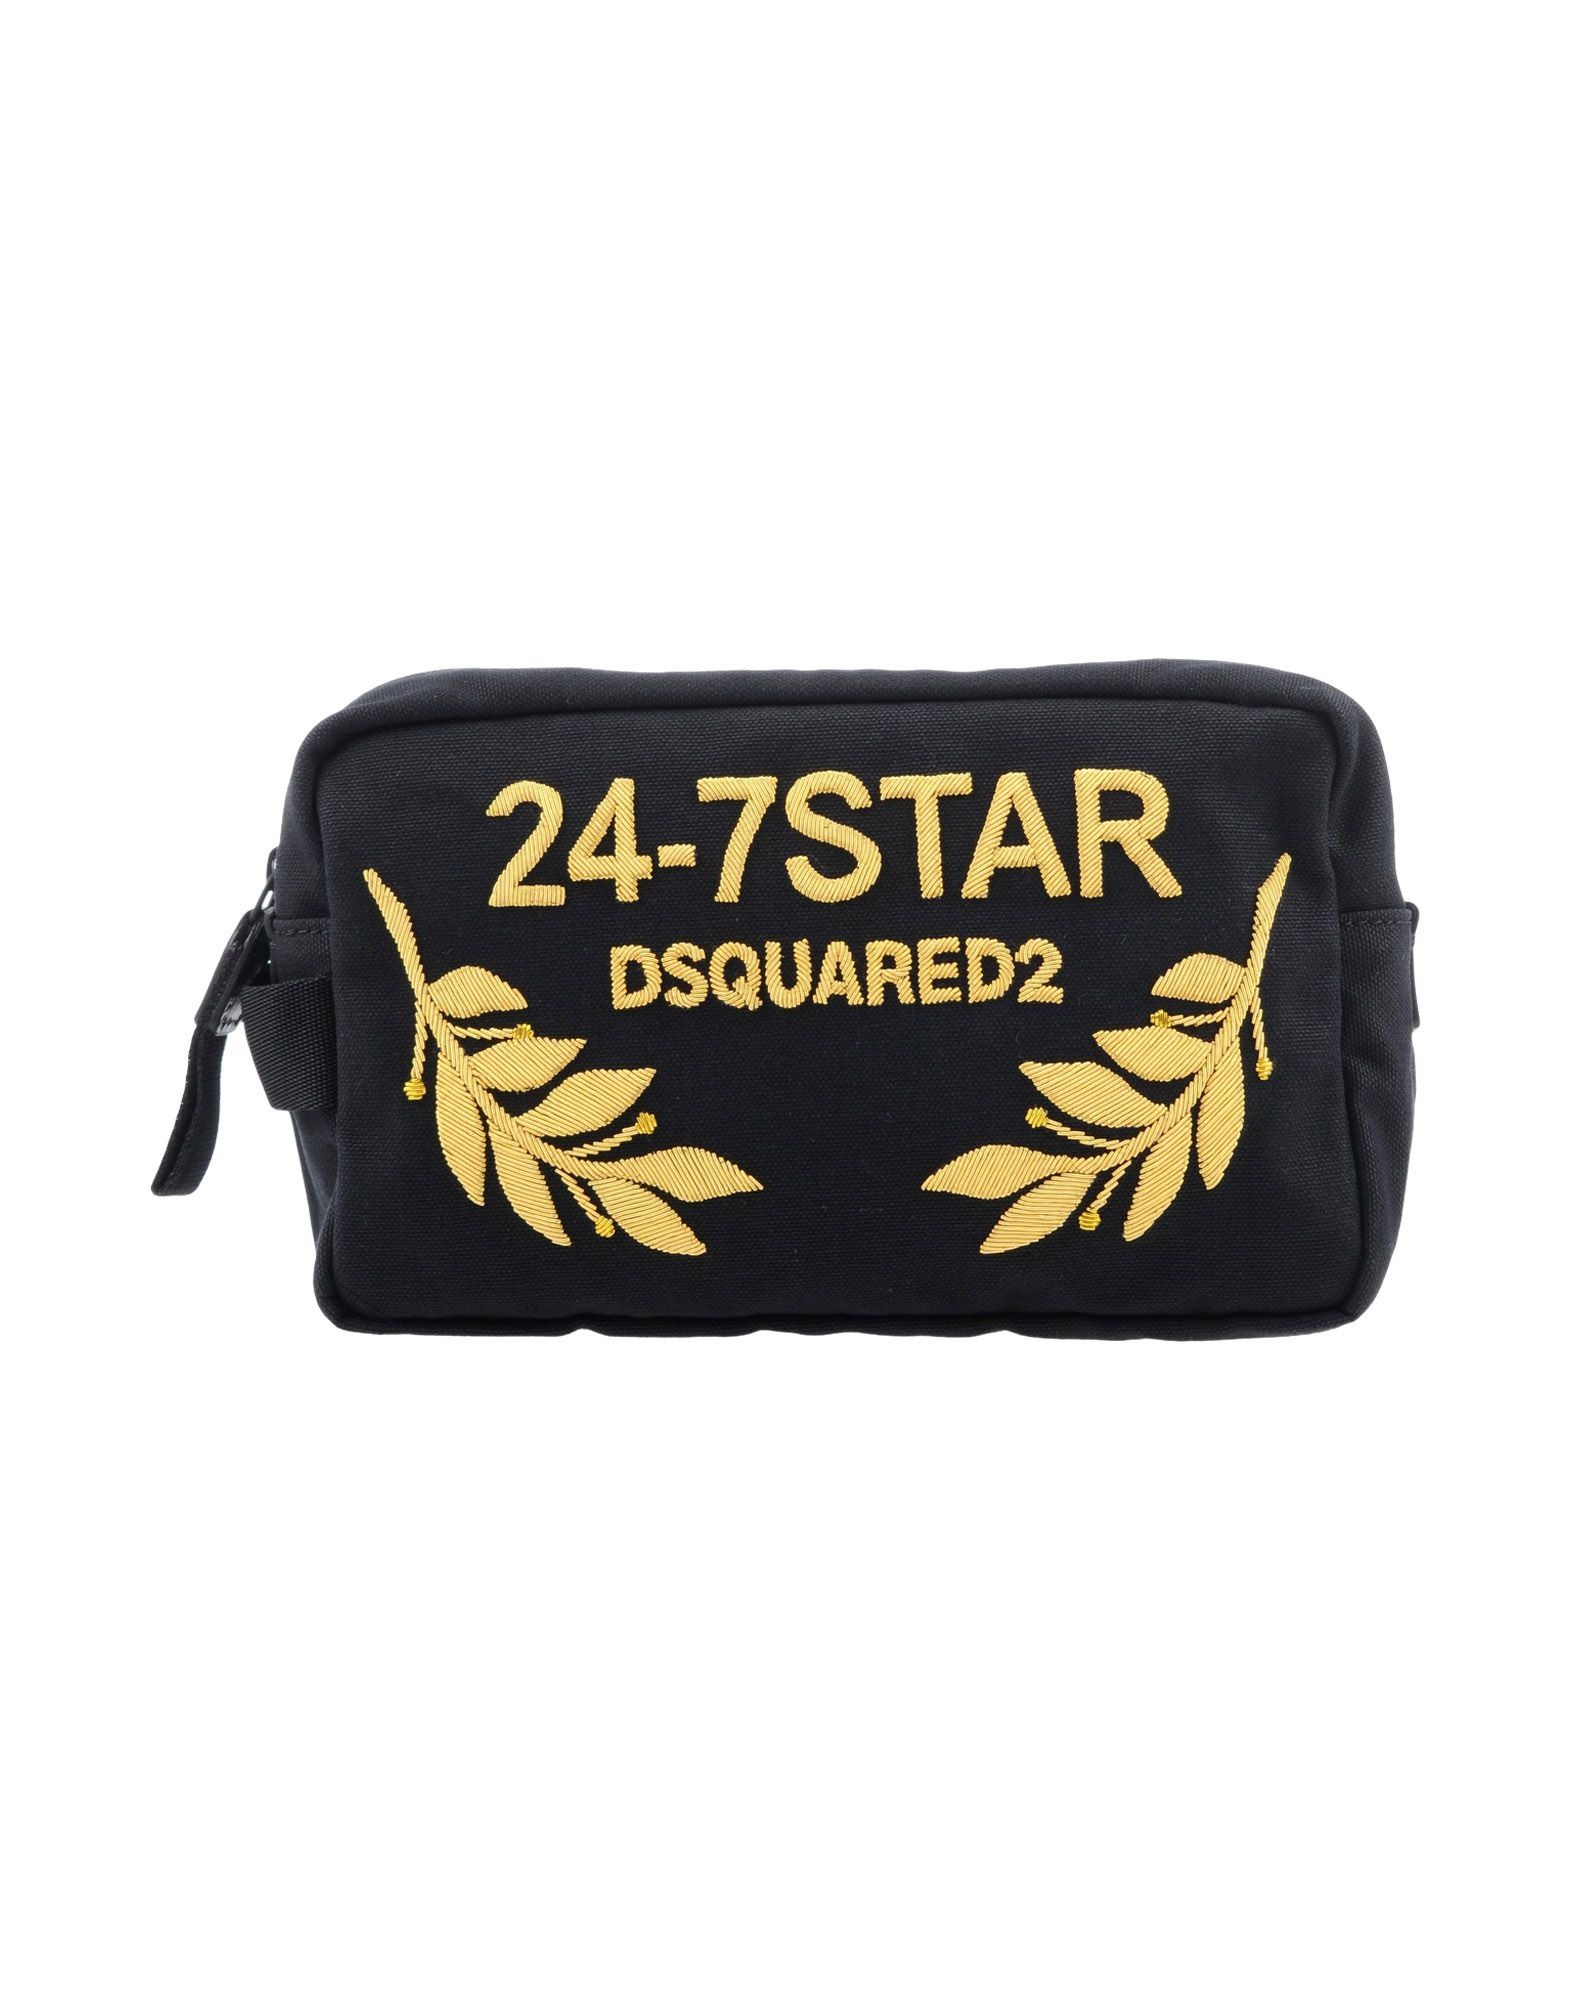 DSQUARED2 Beauty case